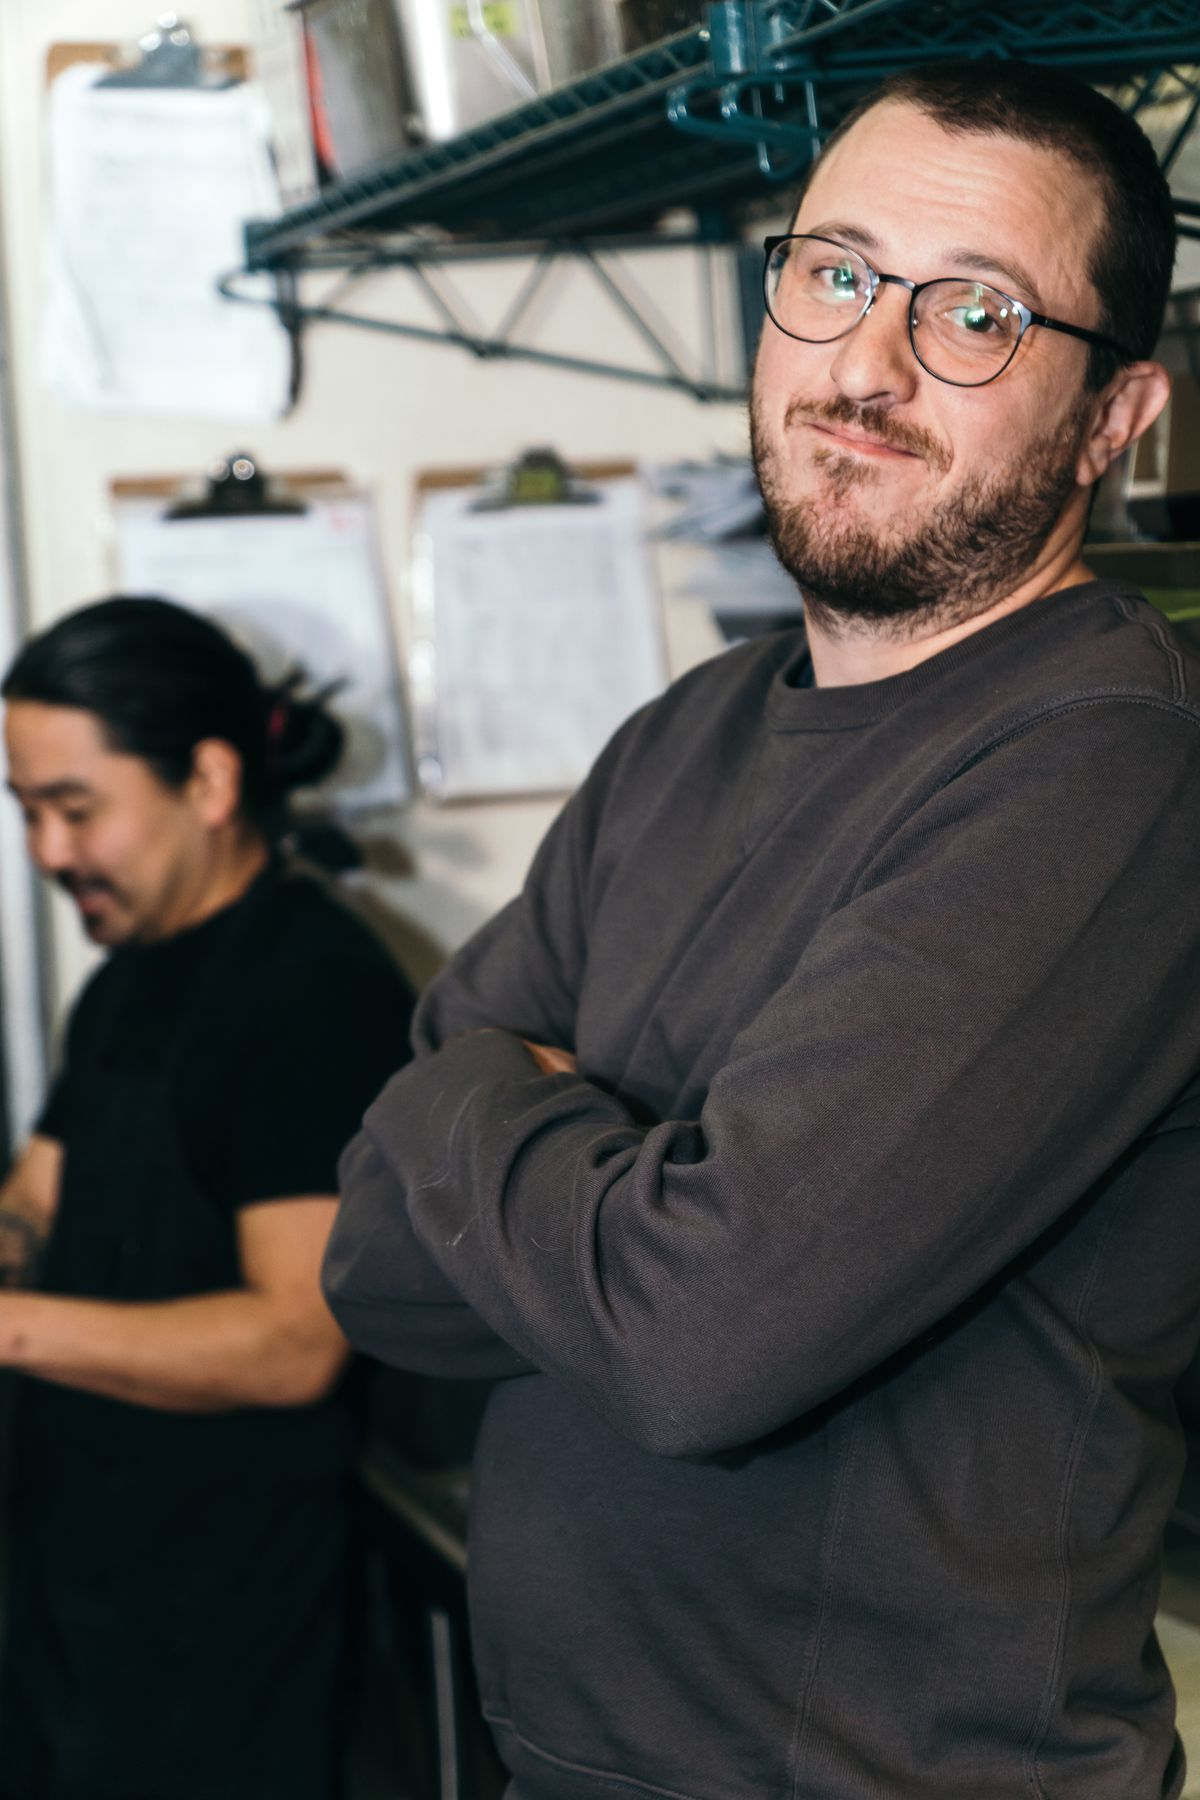 Matt Vicedomini, the pitmaster at Eem, stands with his arms crossed. He's wearing a long-sleeve grey shirt and round glasses, while Colin Yoshimoto stands behind him in all black.